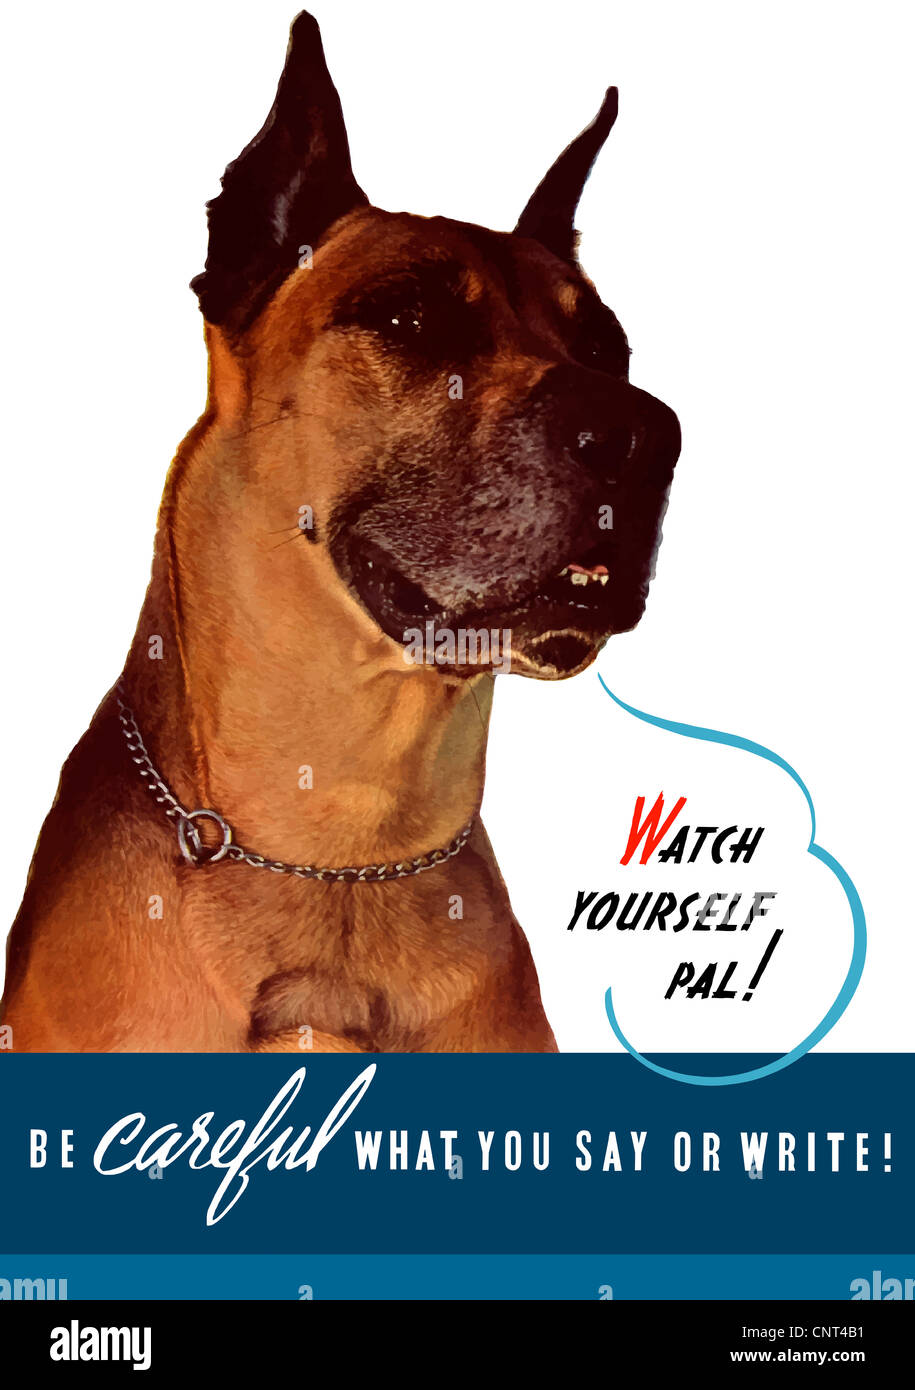 Vintage World War II poster of a Great Dane saying, Watch Yourself Pal! It reads, Be Careful What You Say Or Write! - Stock Image